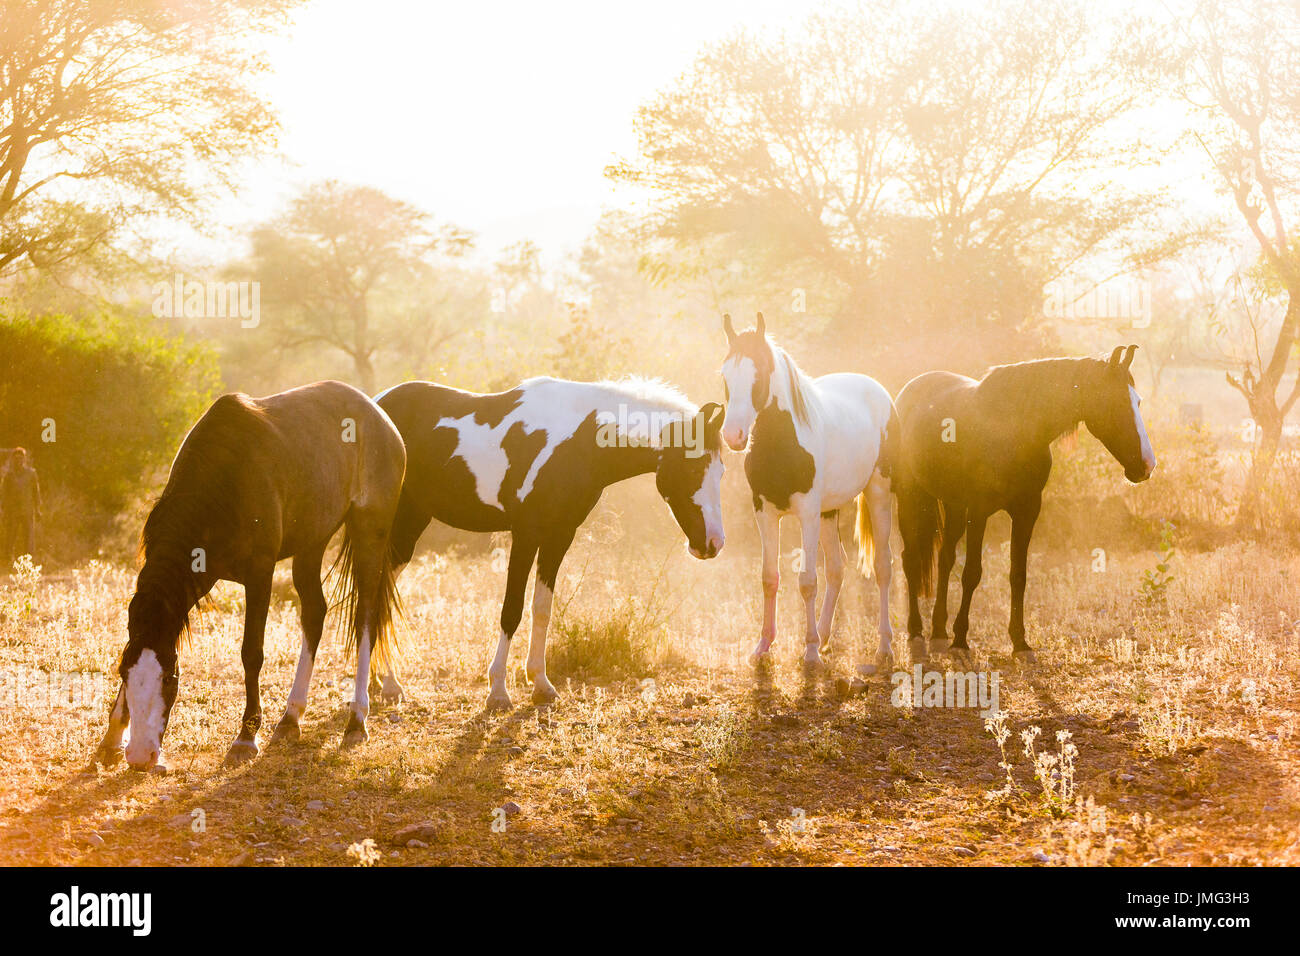 Marwari Horse. Group standing in evening light. India - Stock Image